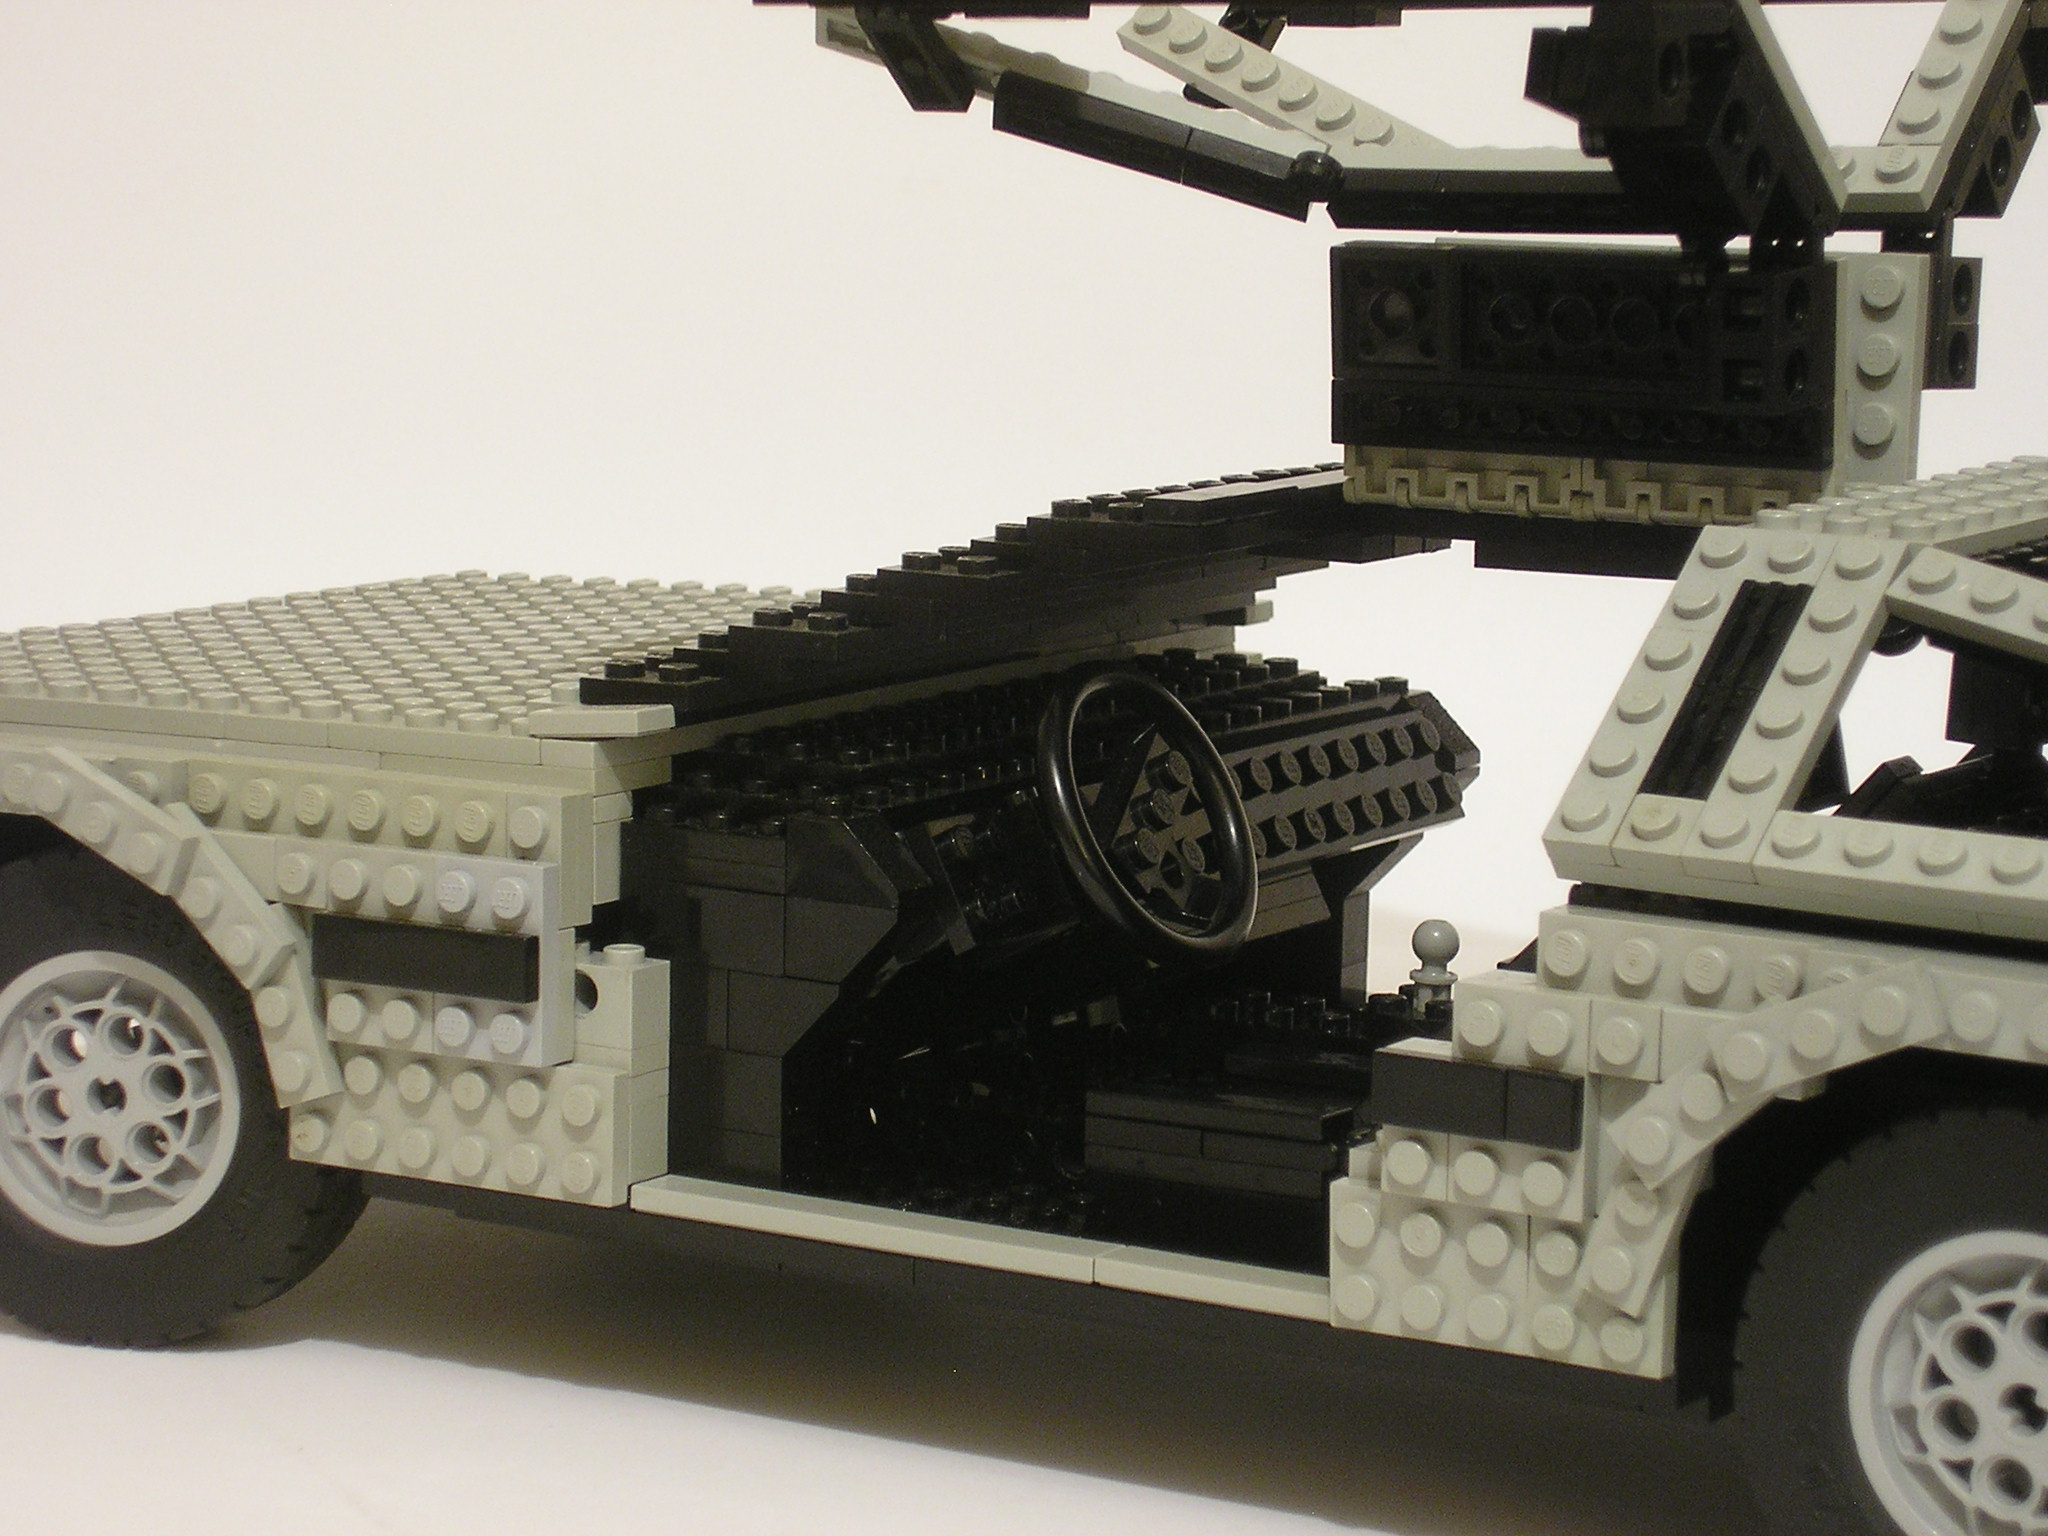 delorean09.jpg